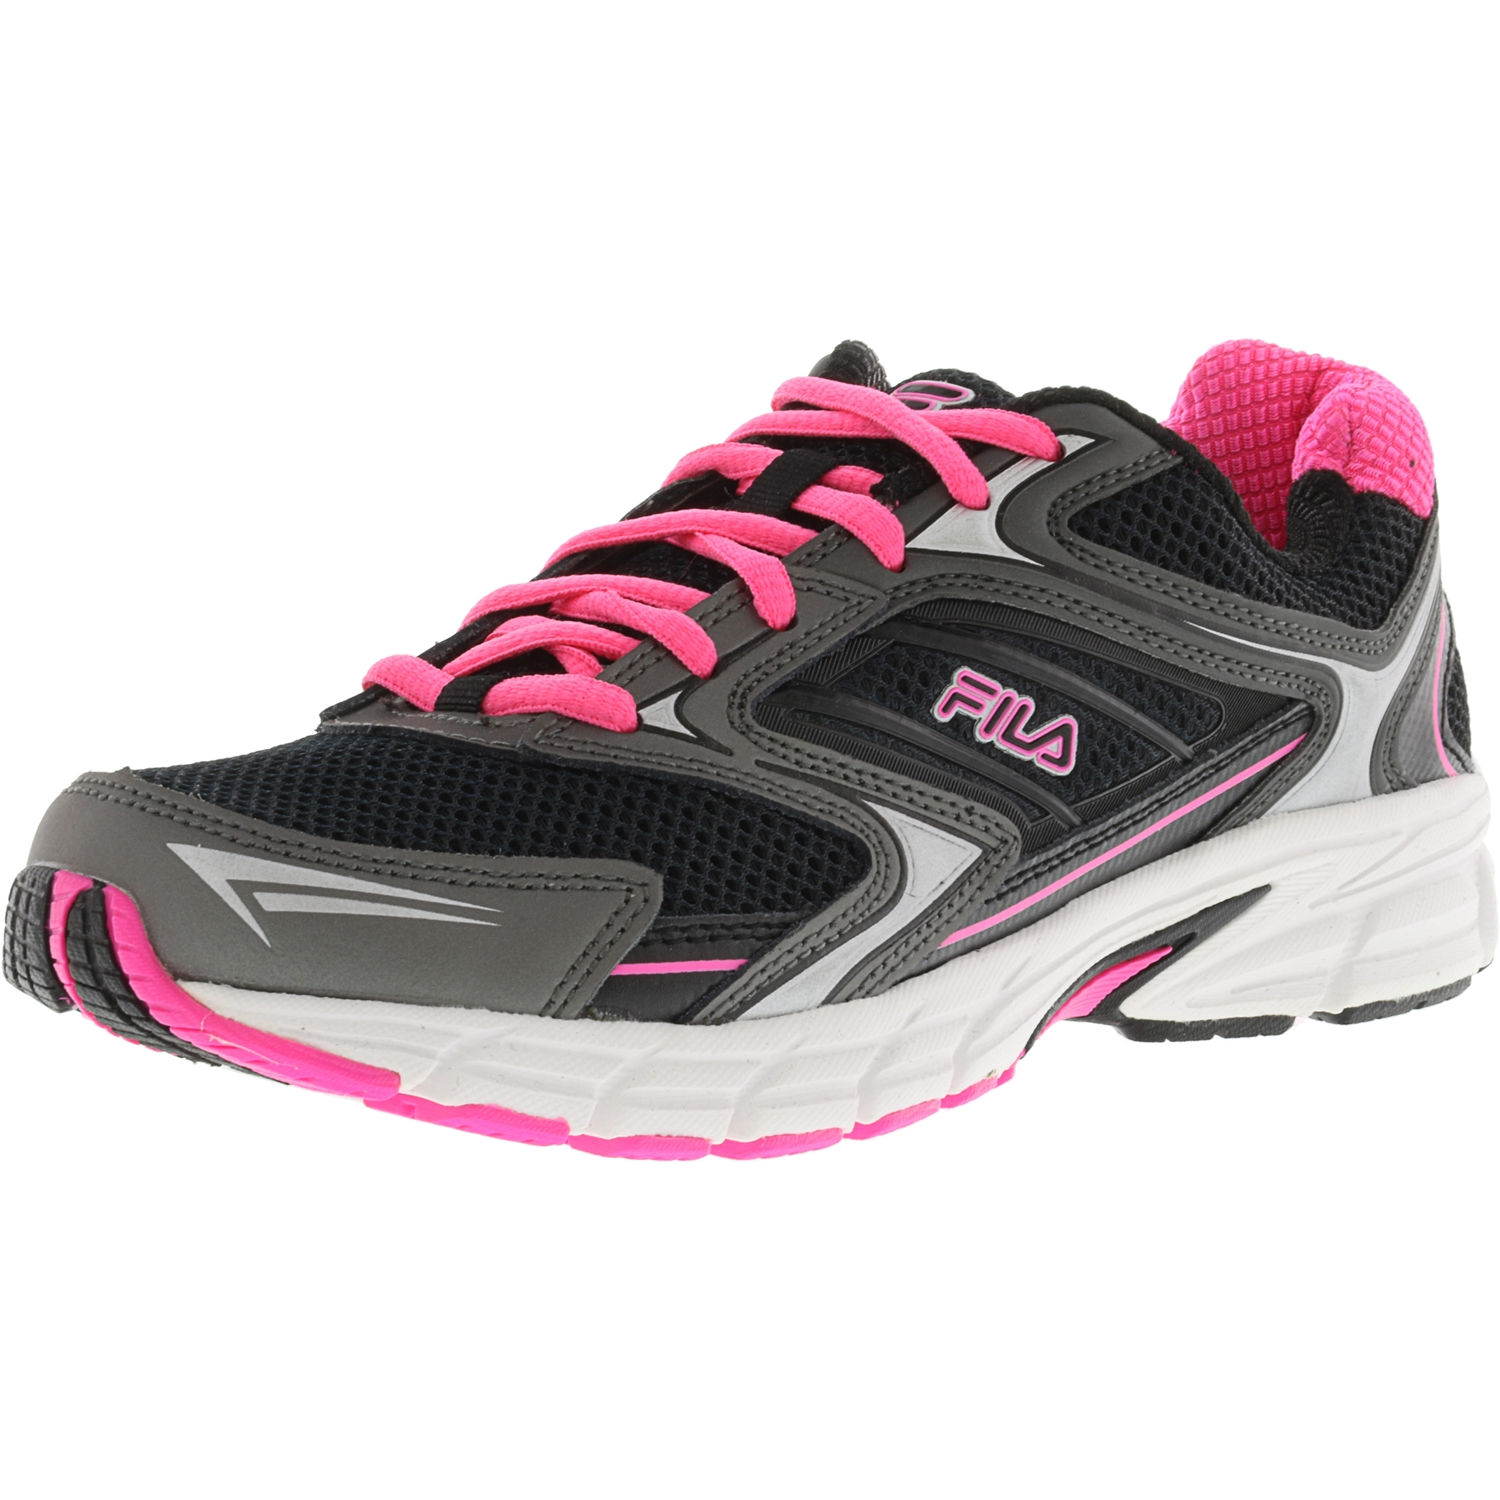 Fila Women's Xtent 4 White   Diva Pink Metallic Silver Ankle-High Running Shoe 8M by Fila